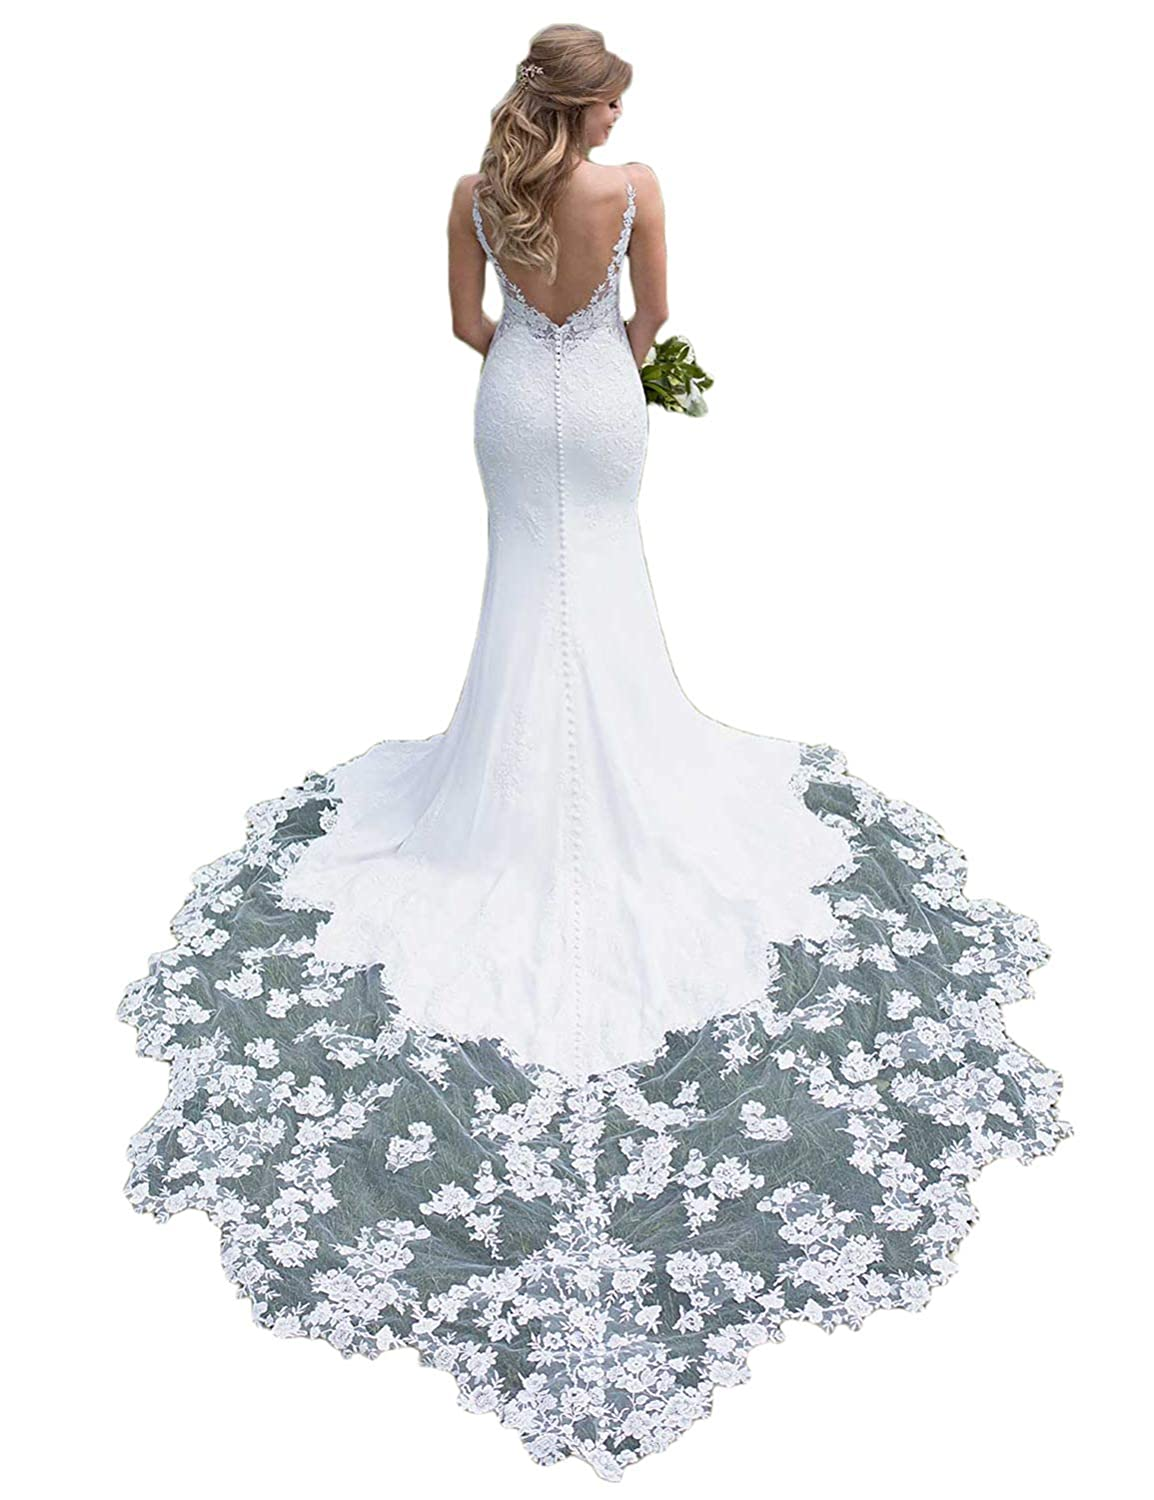 White RYANTH Women's Long Mermaid Wedding Dresses with Train 2019 Lace Bridal Gown Straps RWD12